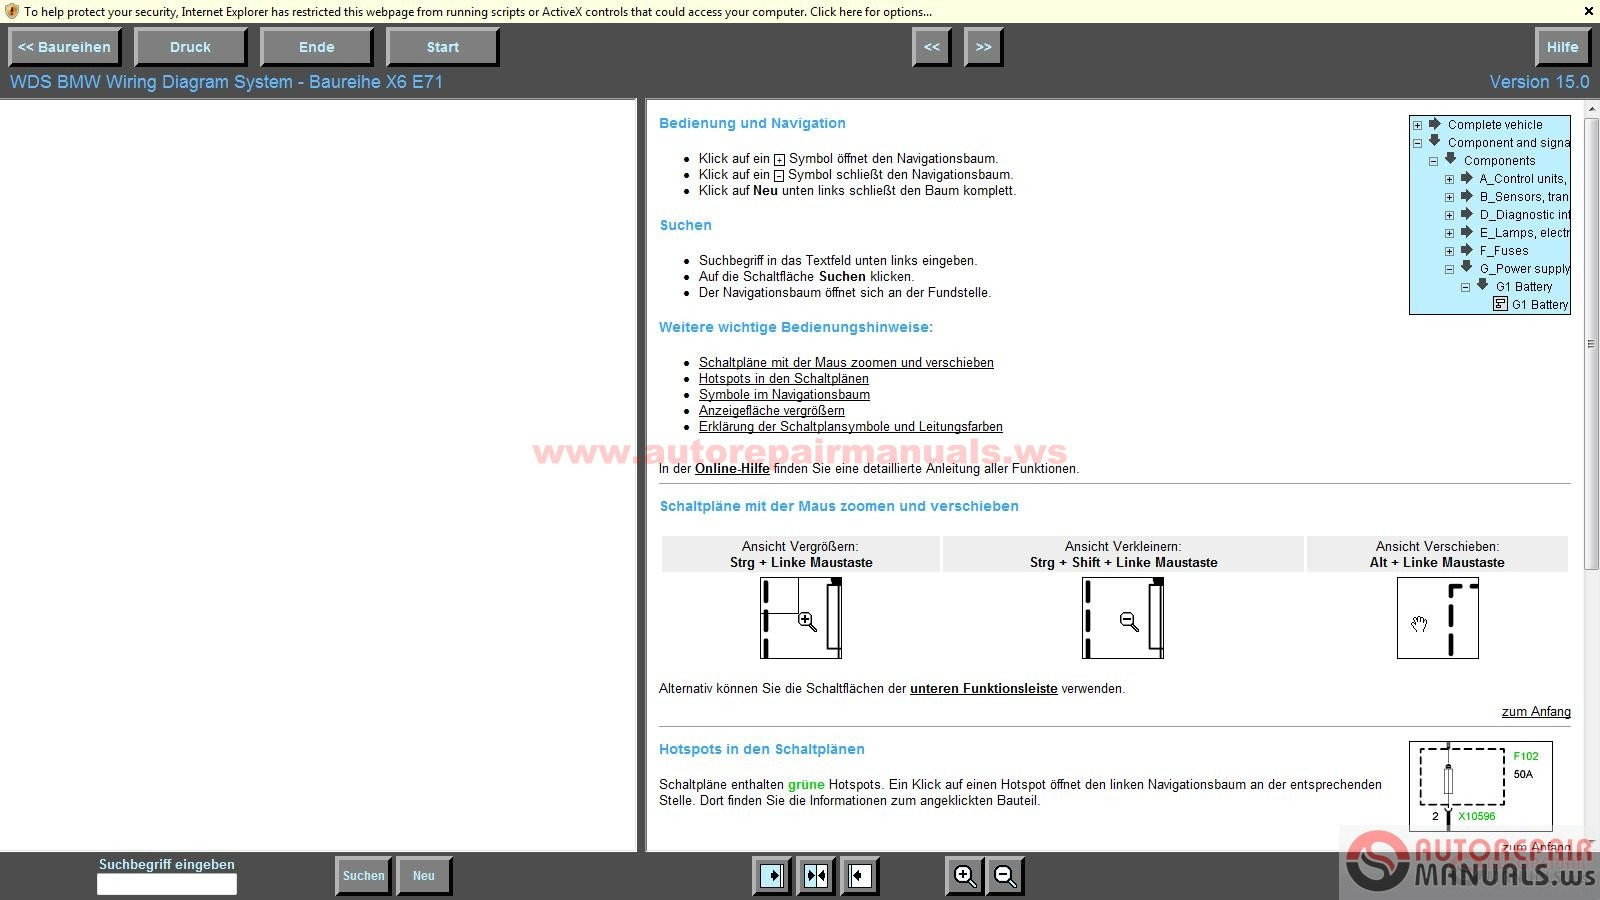 medium resolution of bmw wds v15 and mini wds v7 wiring diagram system free download now